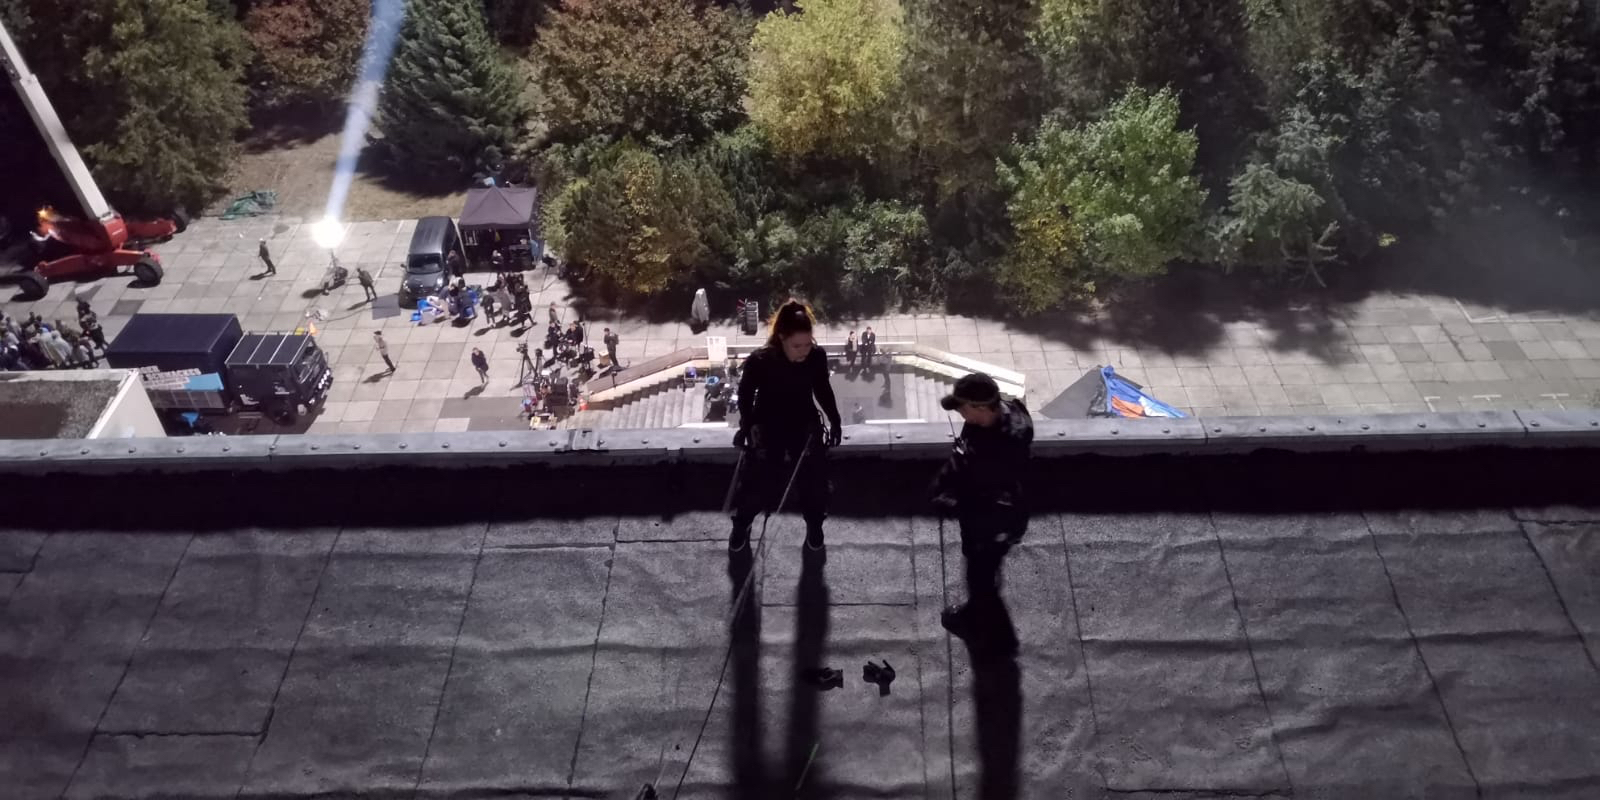 MG ACTION, Action Team, Stunt Rigging, Abseilen, Stunt Deutschland, Stuntteam, Crewsafety